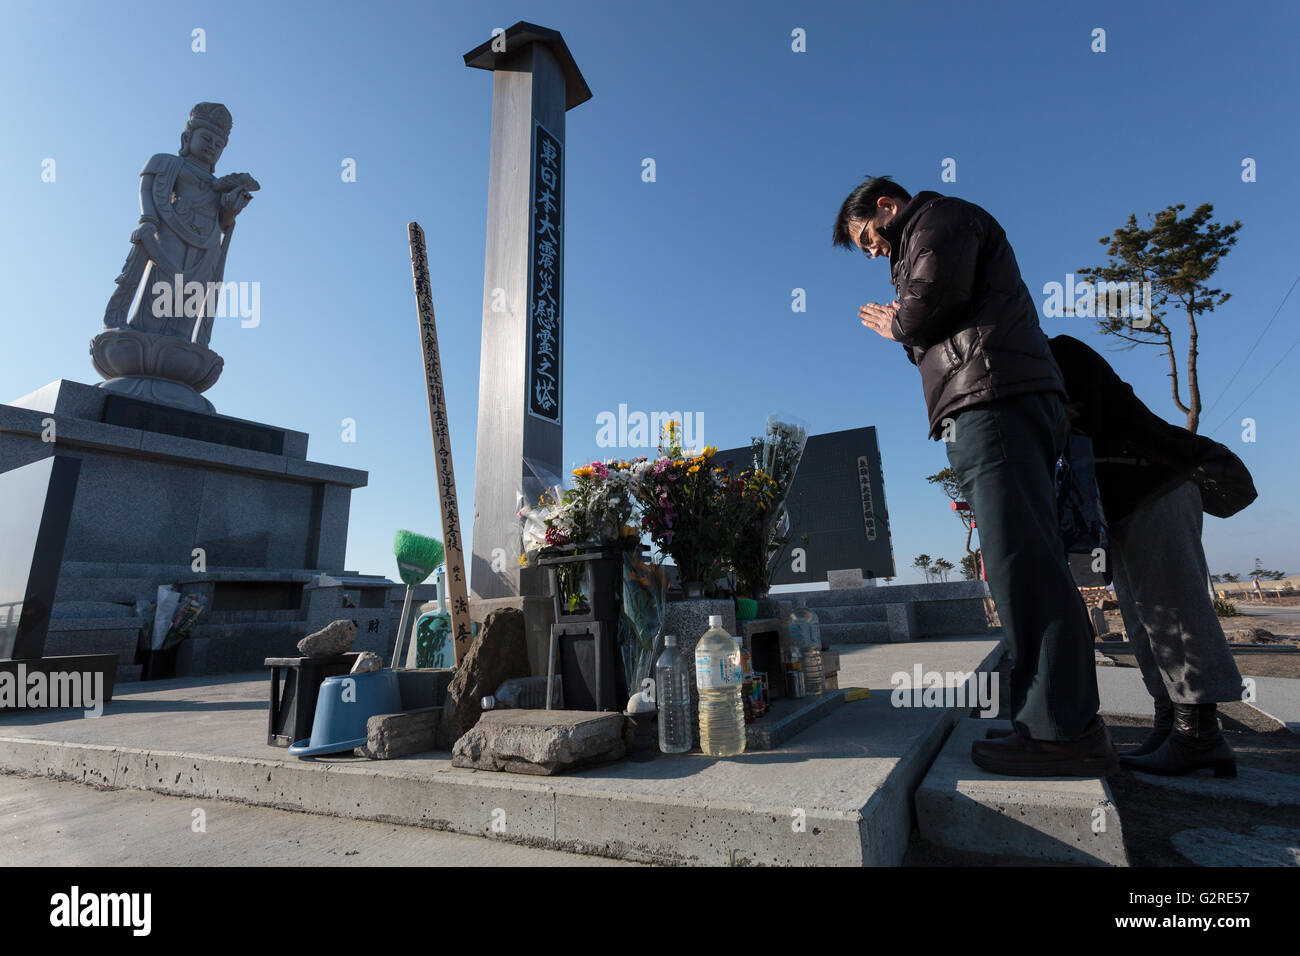 People come to pray and remember the victims of the tsunami at Arahama cenotaph on the seawall near Sendai, Miyagi, - Stock Image